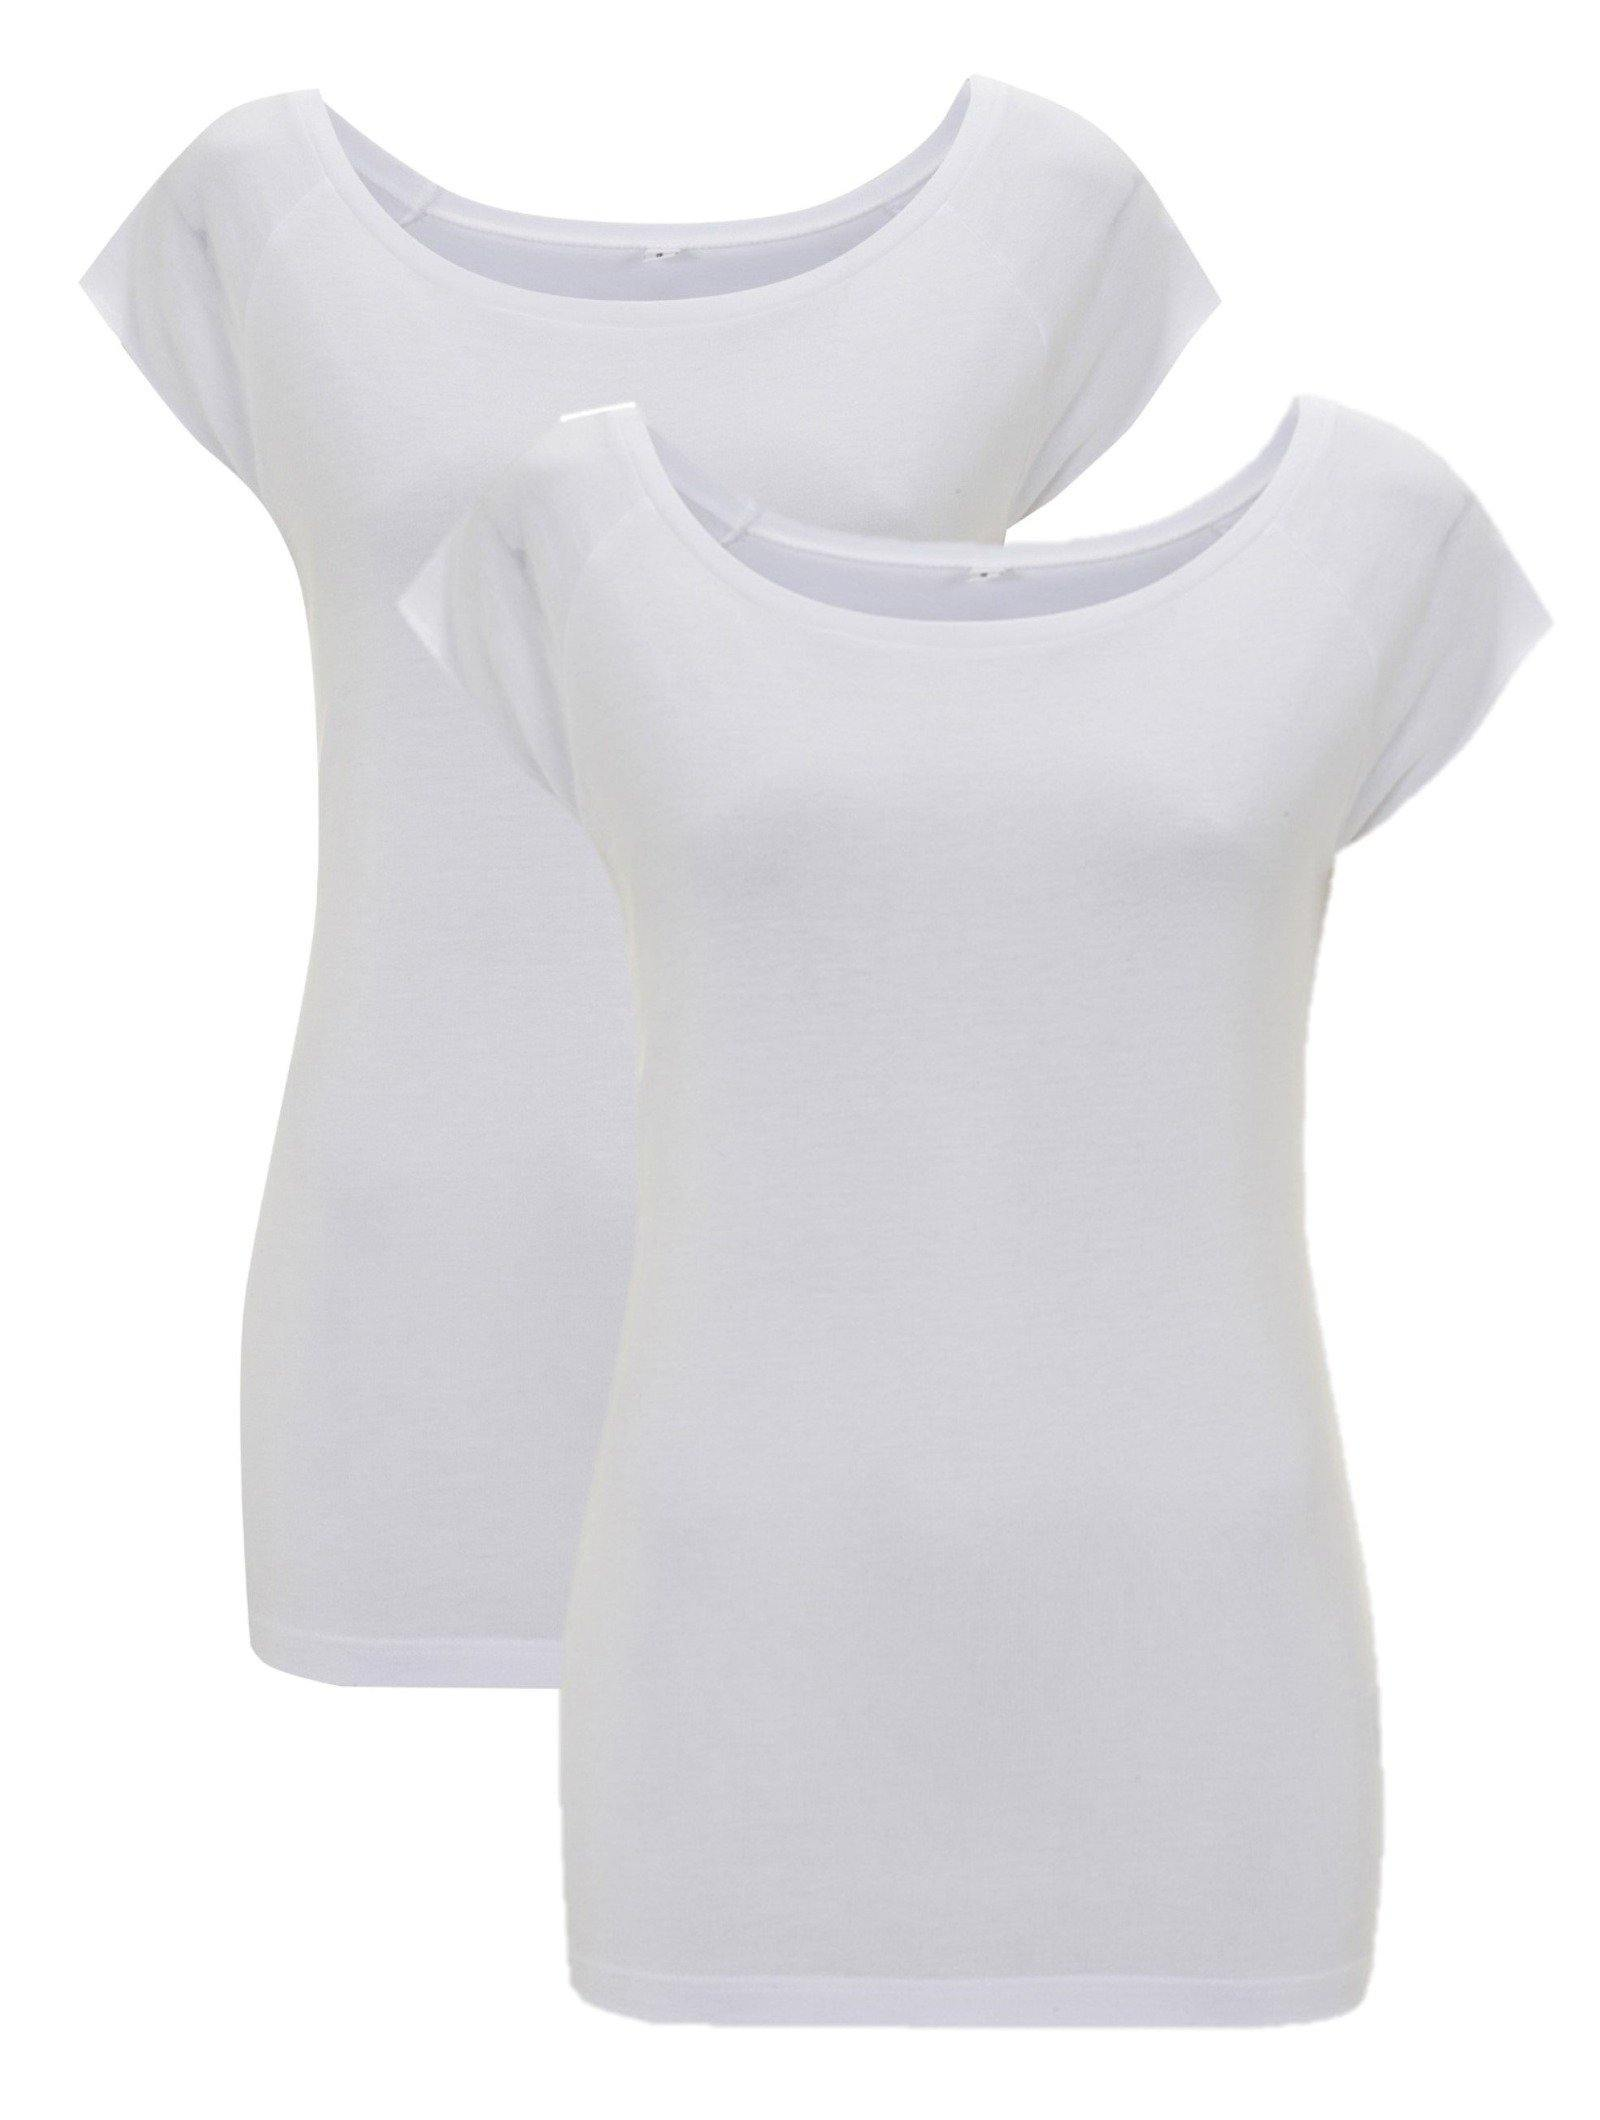 Bamboe t-shirt dames 2-pack   Cayboo